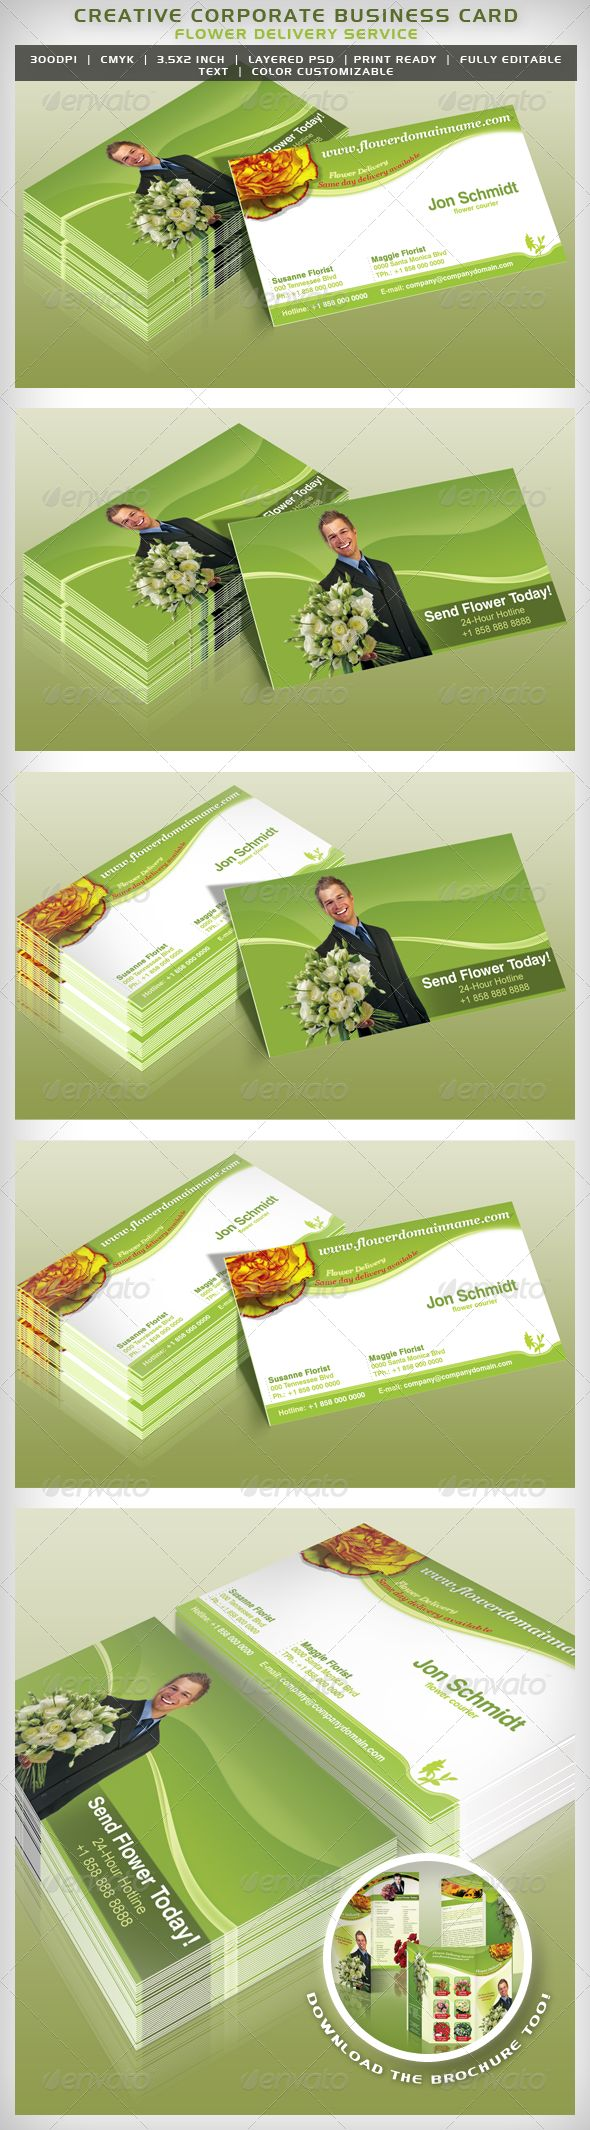 17 best Girly Massage Therapist Business Cards images on Pinterest ...